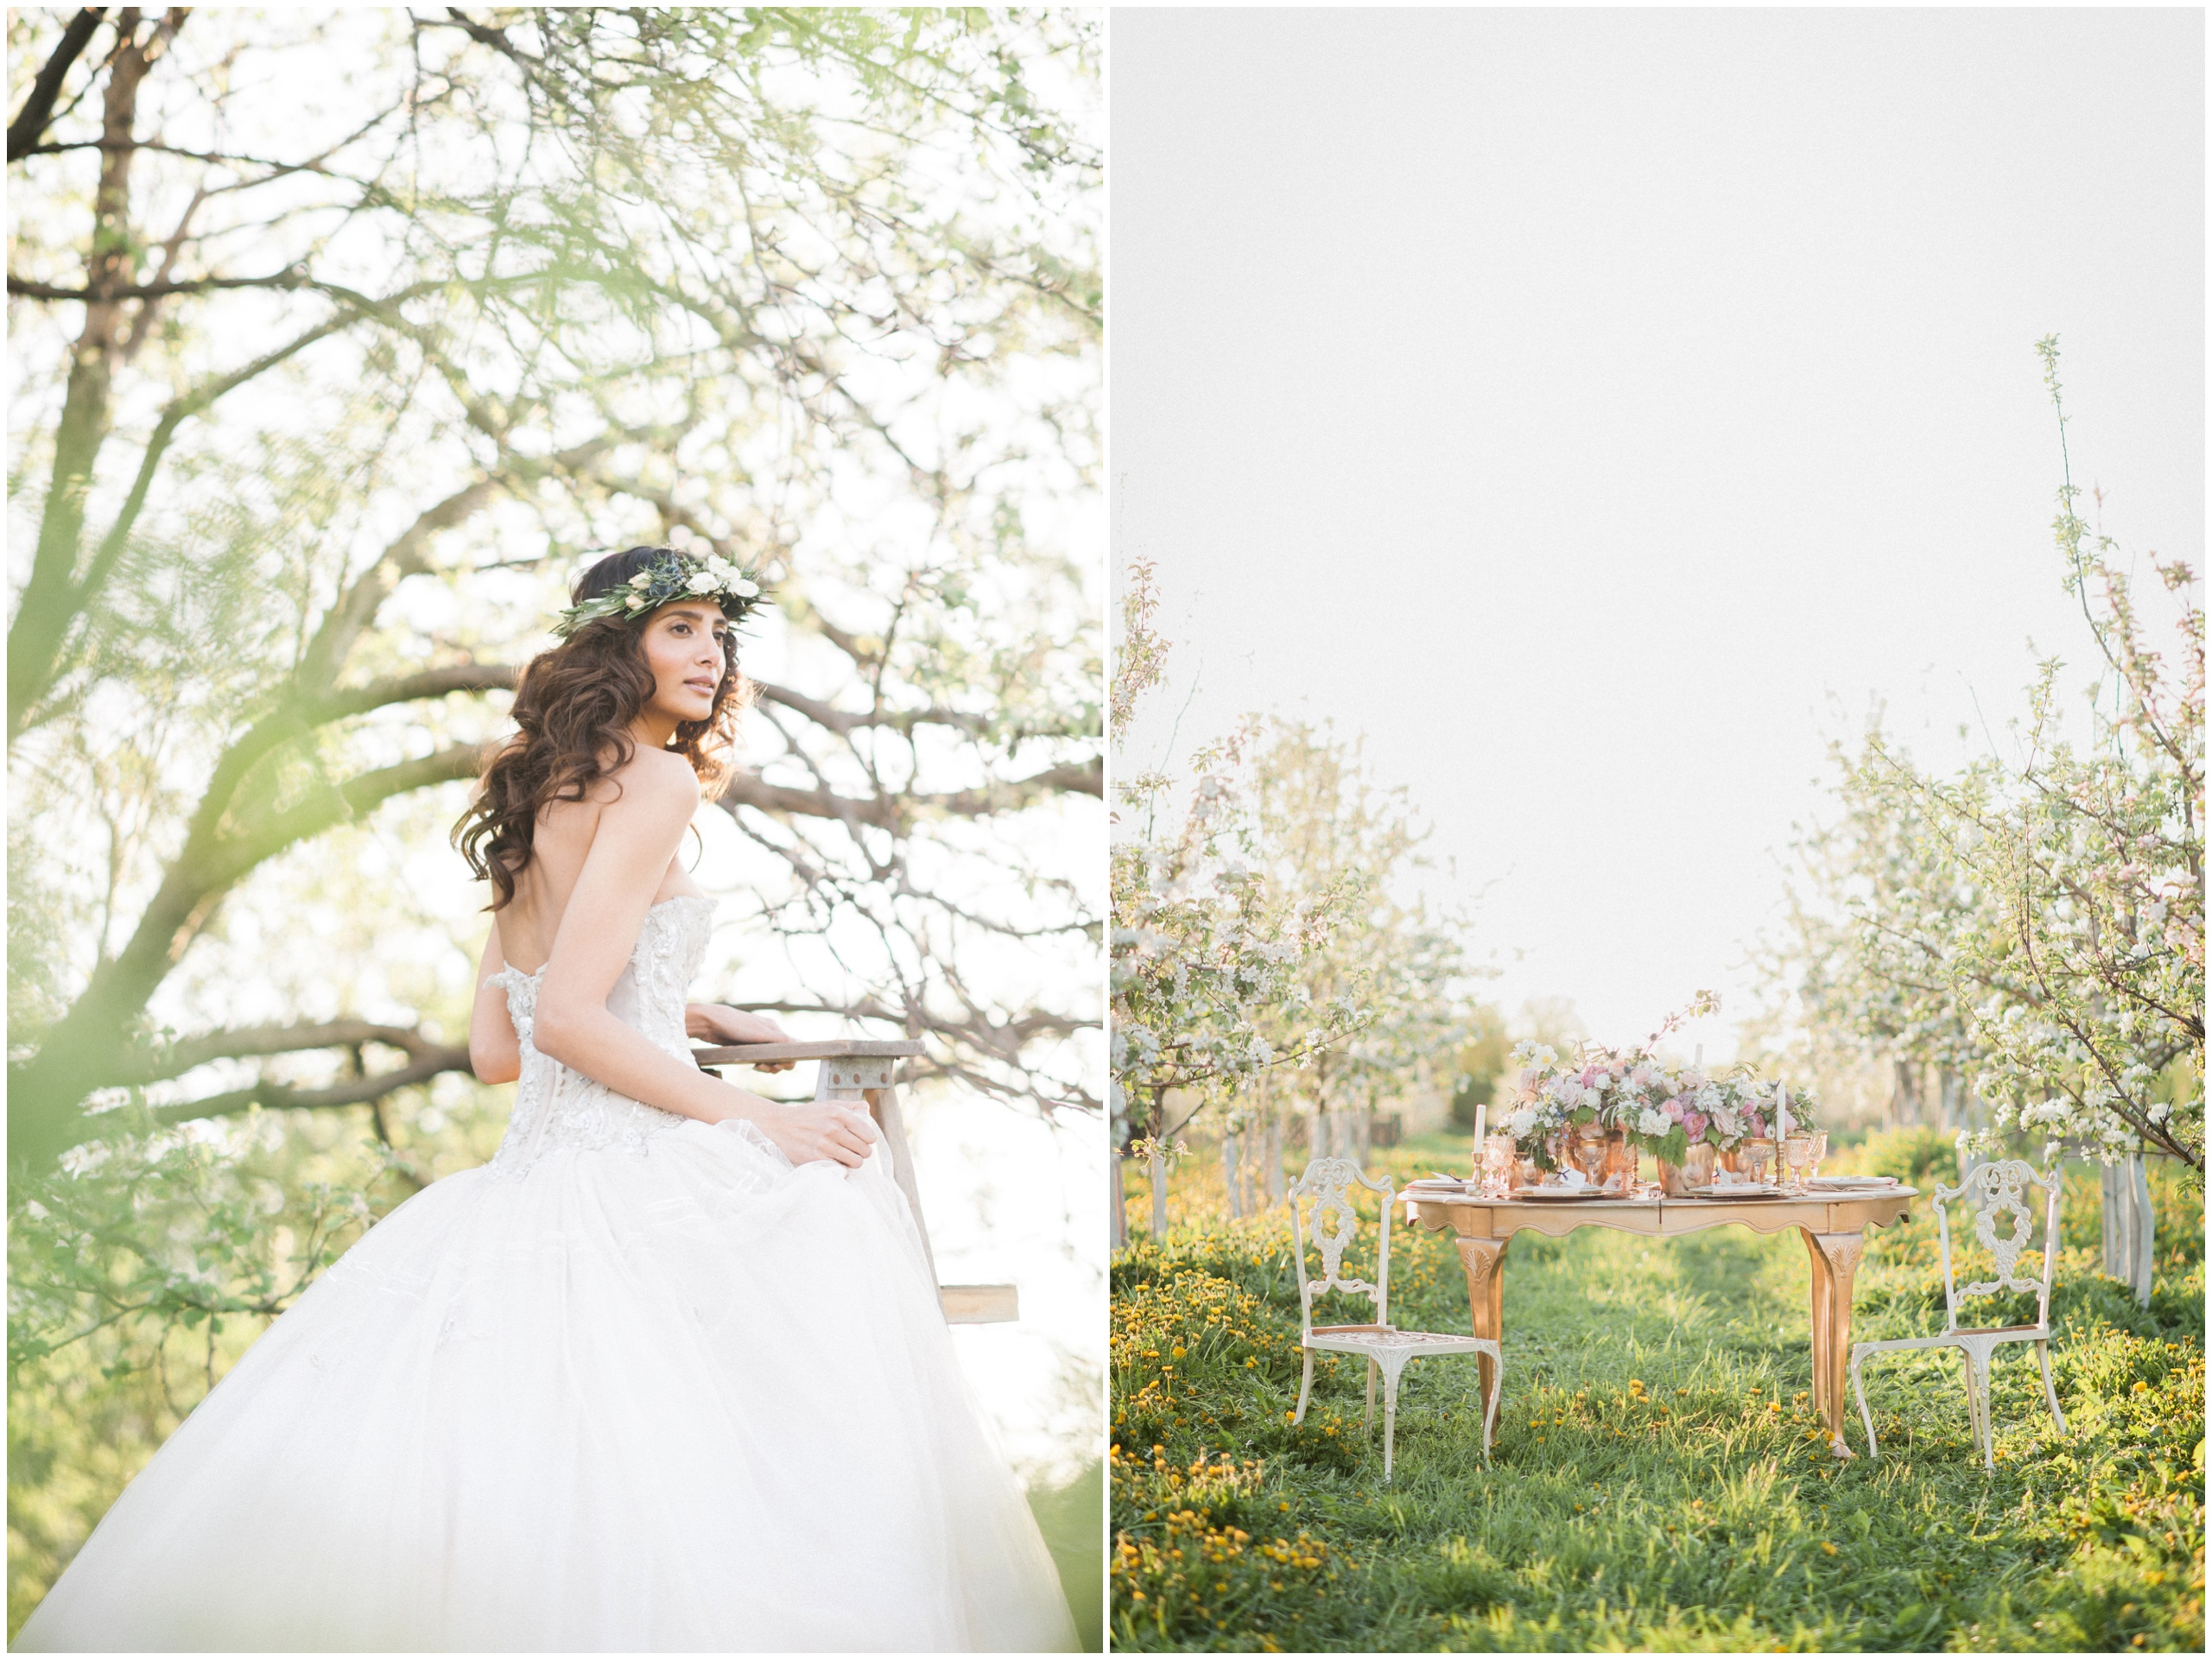 Wedding Inspiration: Bride wearing flower crown and Ines Di Santo gown on rustic wooden ladder.